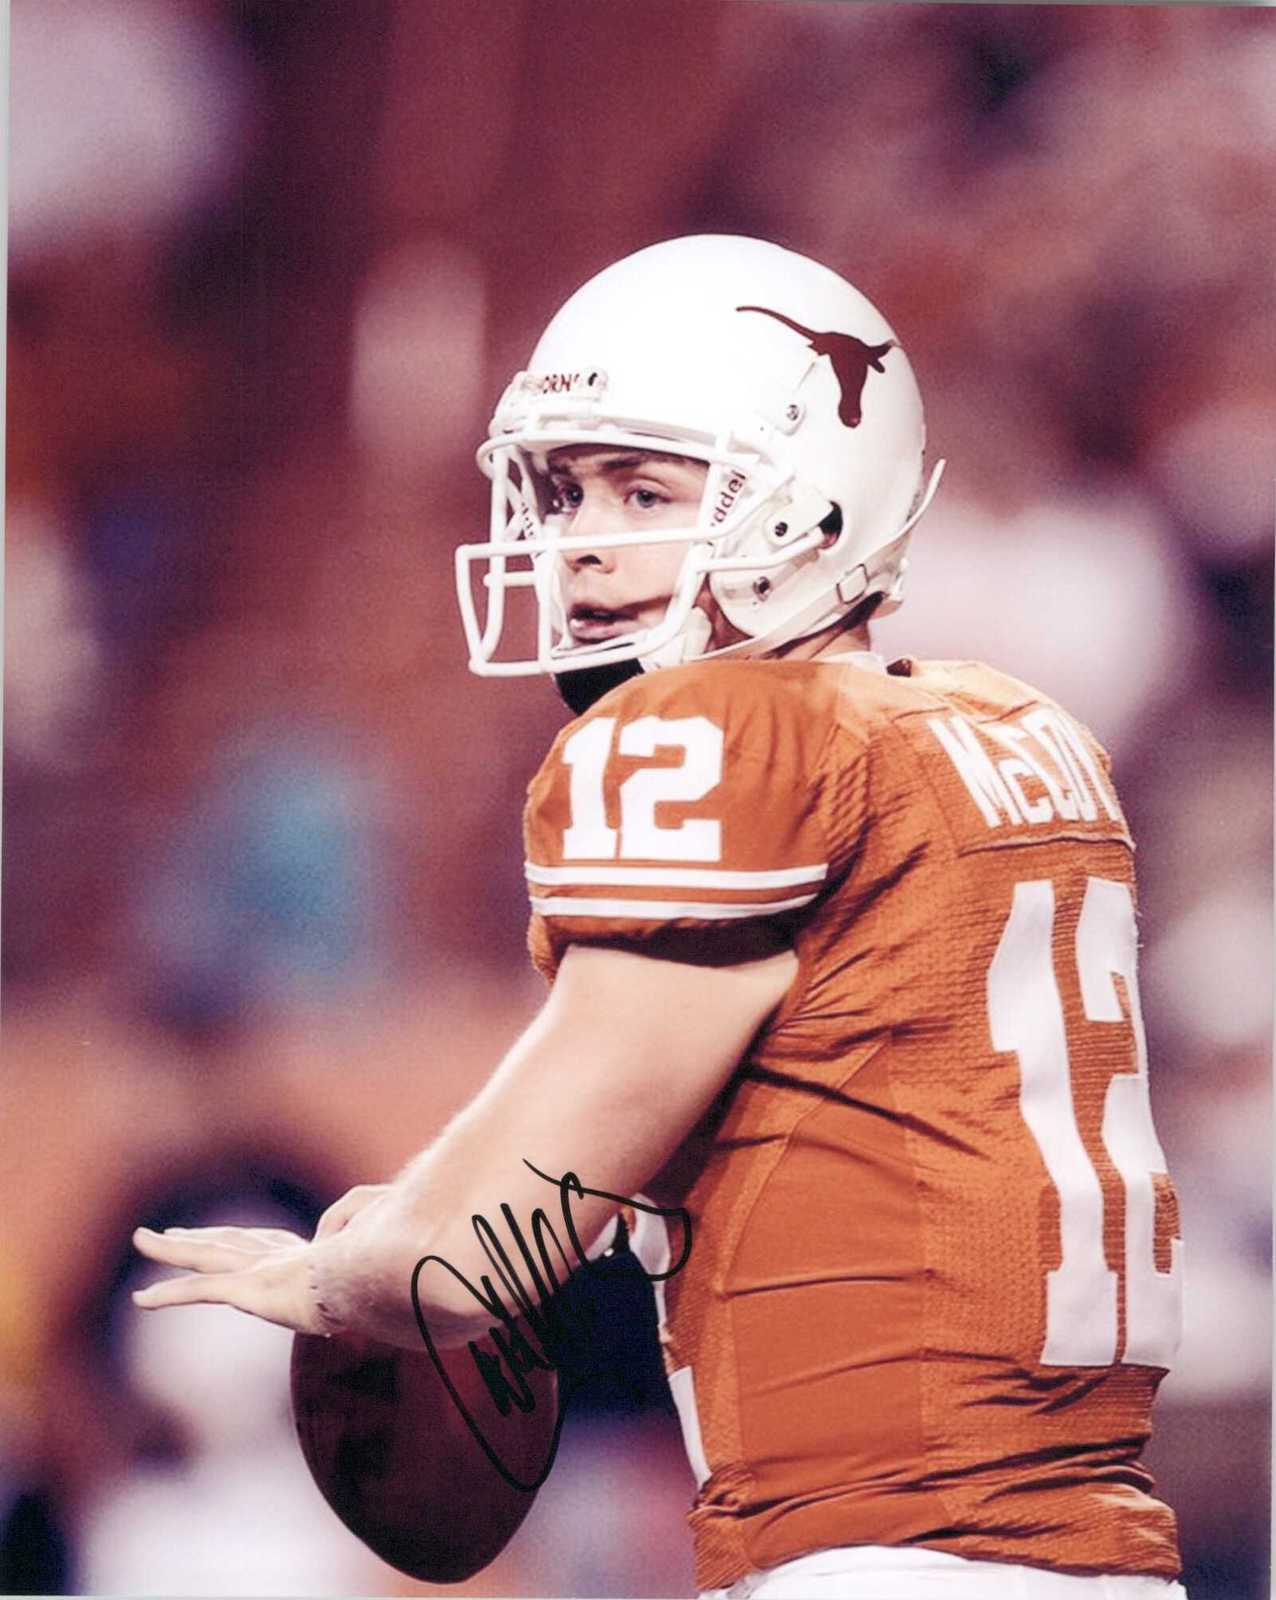 Primary image for Colt McCoy Signed Autographed Glossy 8x10 Photo - Texas Longhorns